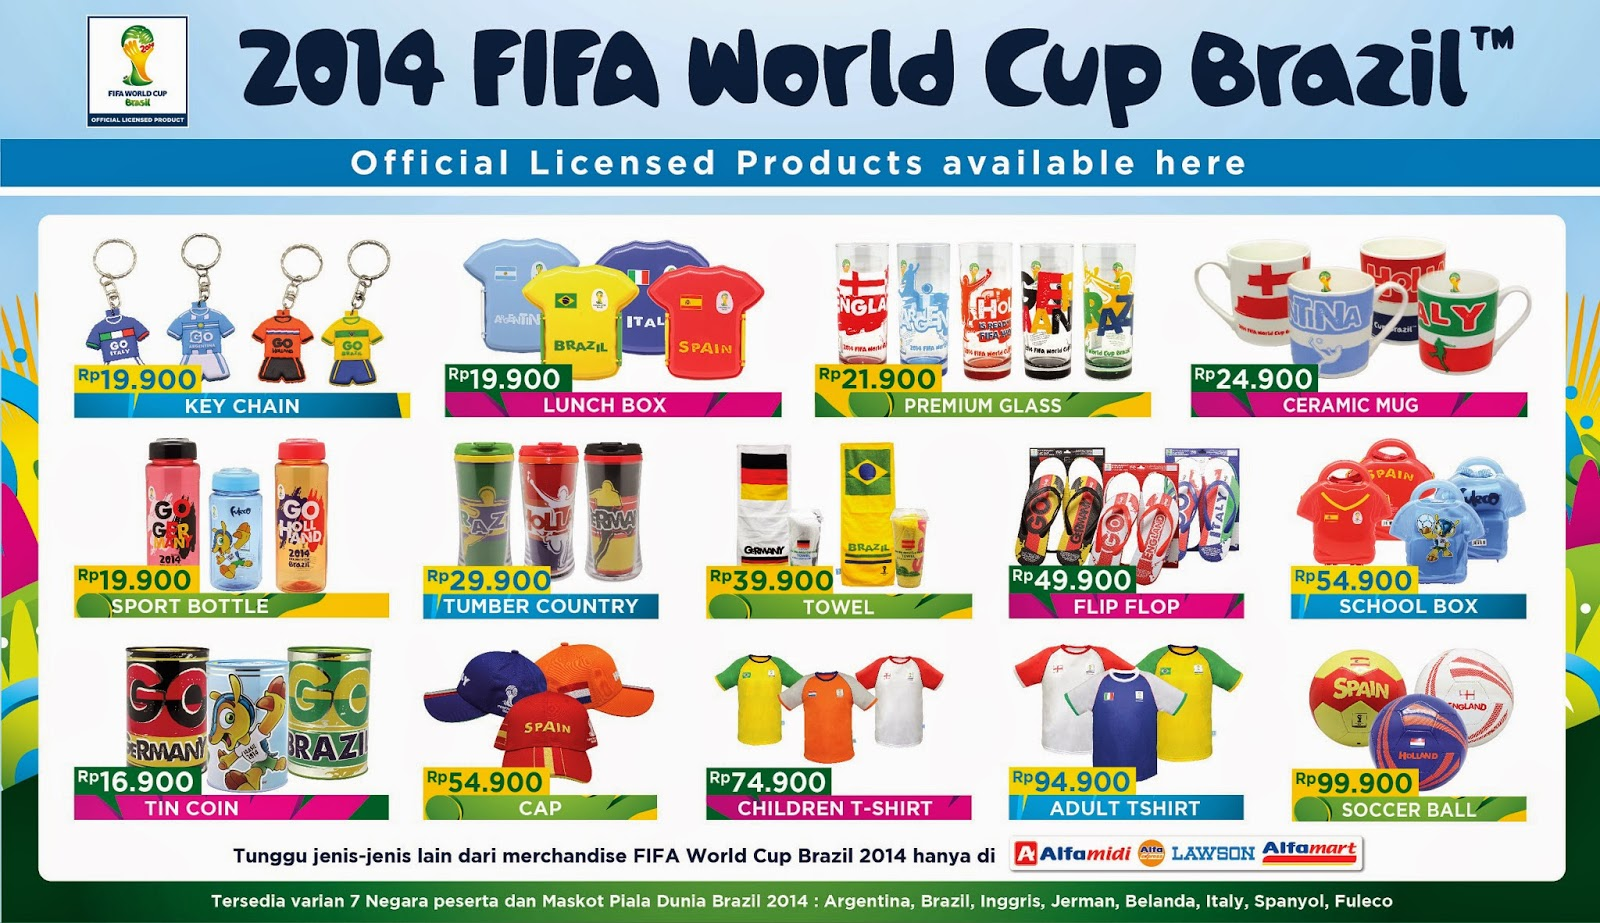 Produk Alfamart official licensed merchandise FIFA piala dunia Brazil 2014